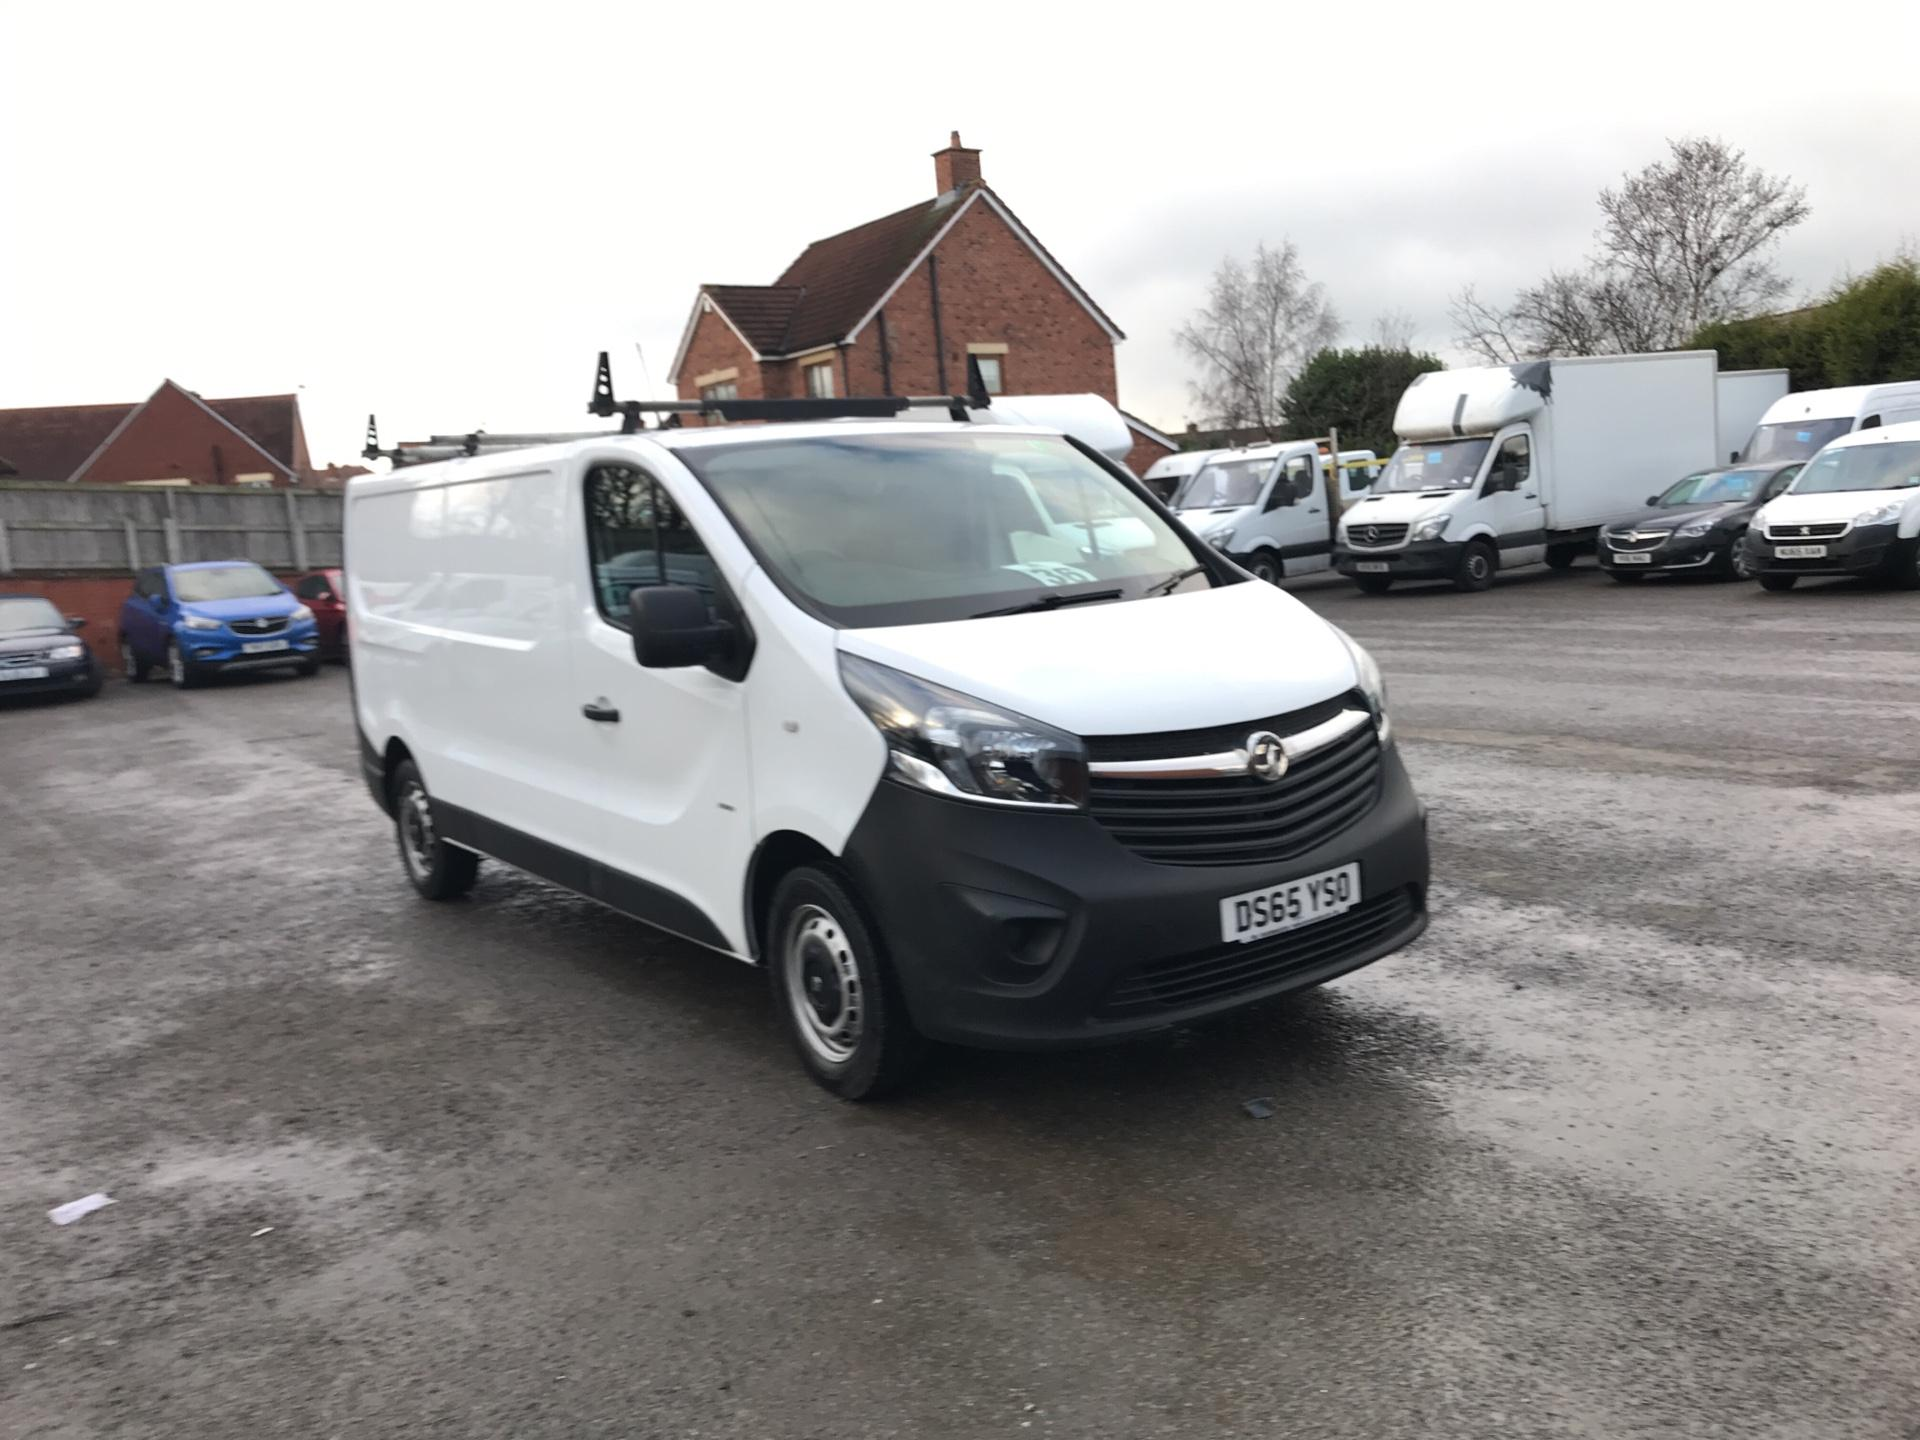 2015 Vauxhall Vivaro L2 H1 2900 1.6 115PS EURO 5 *VALUE RANGE VEHICLE CONDITION REFLECTED IN PRICE* (DS65YSO)